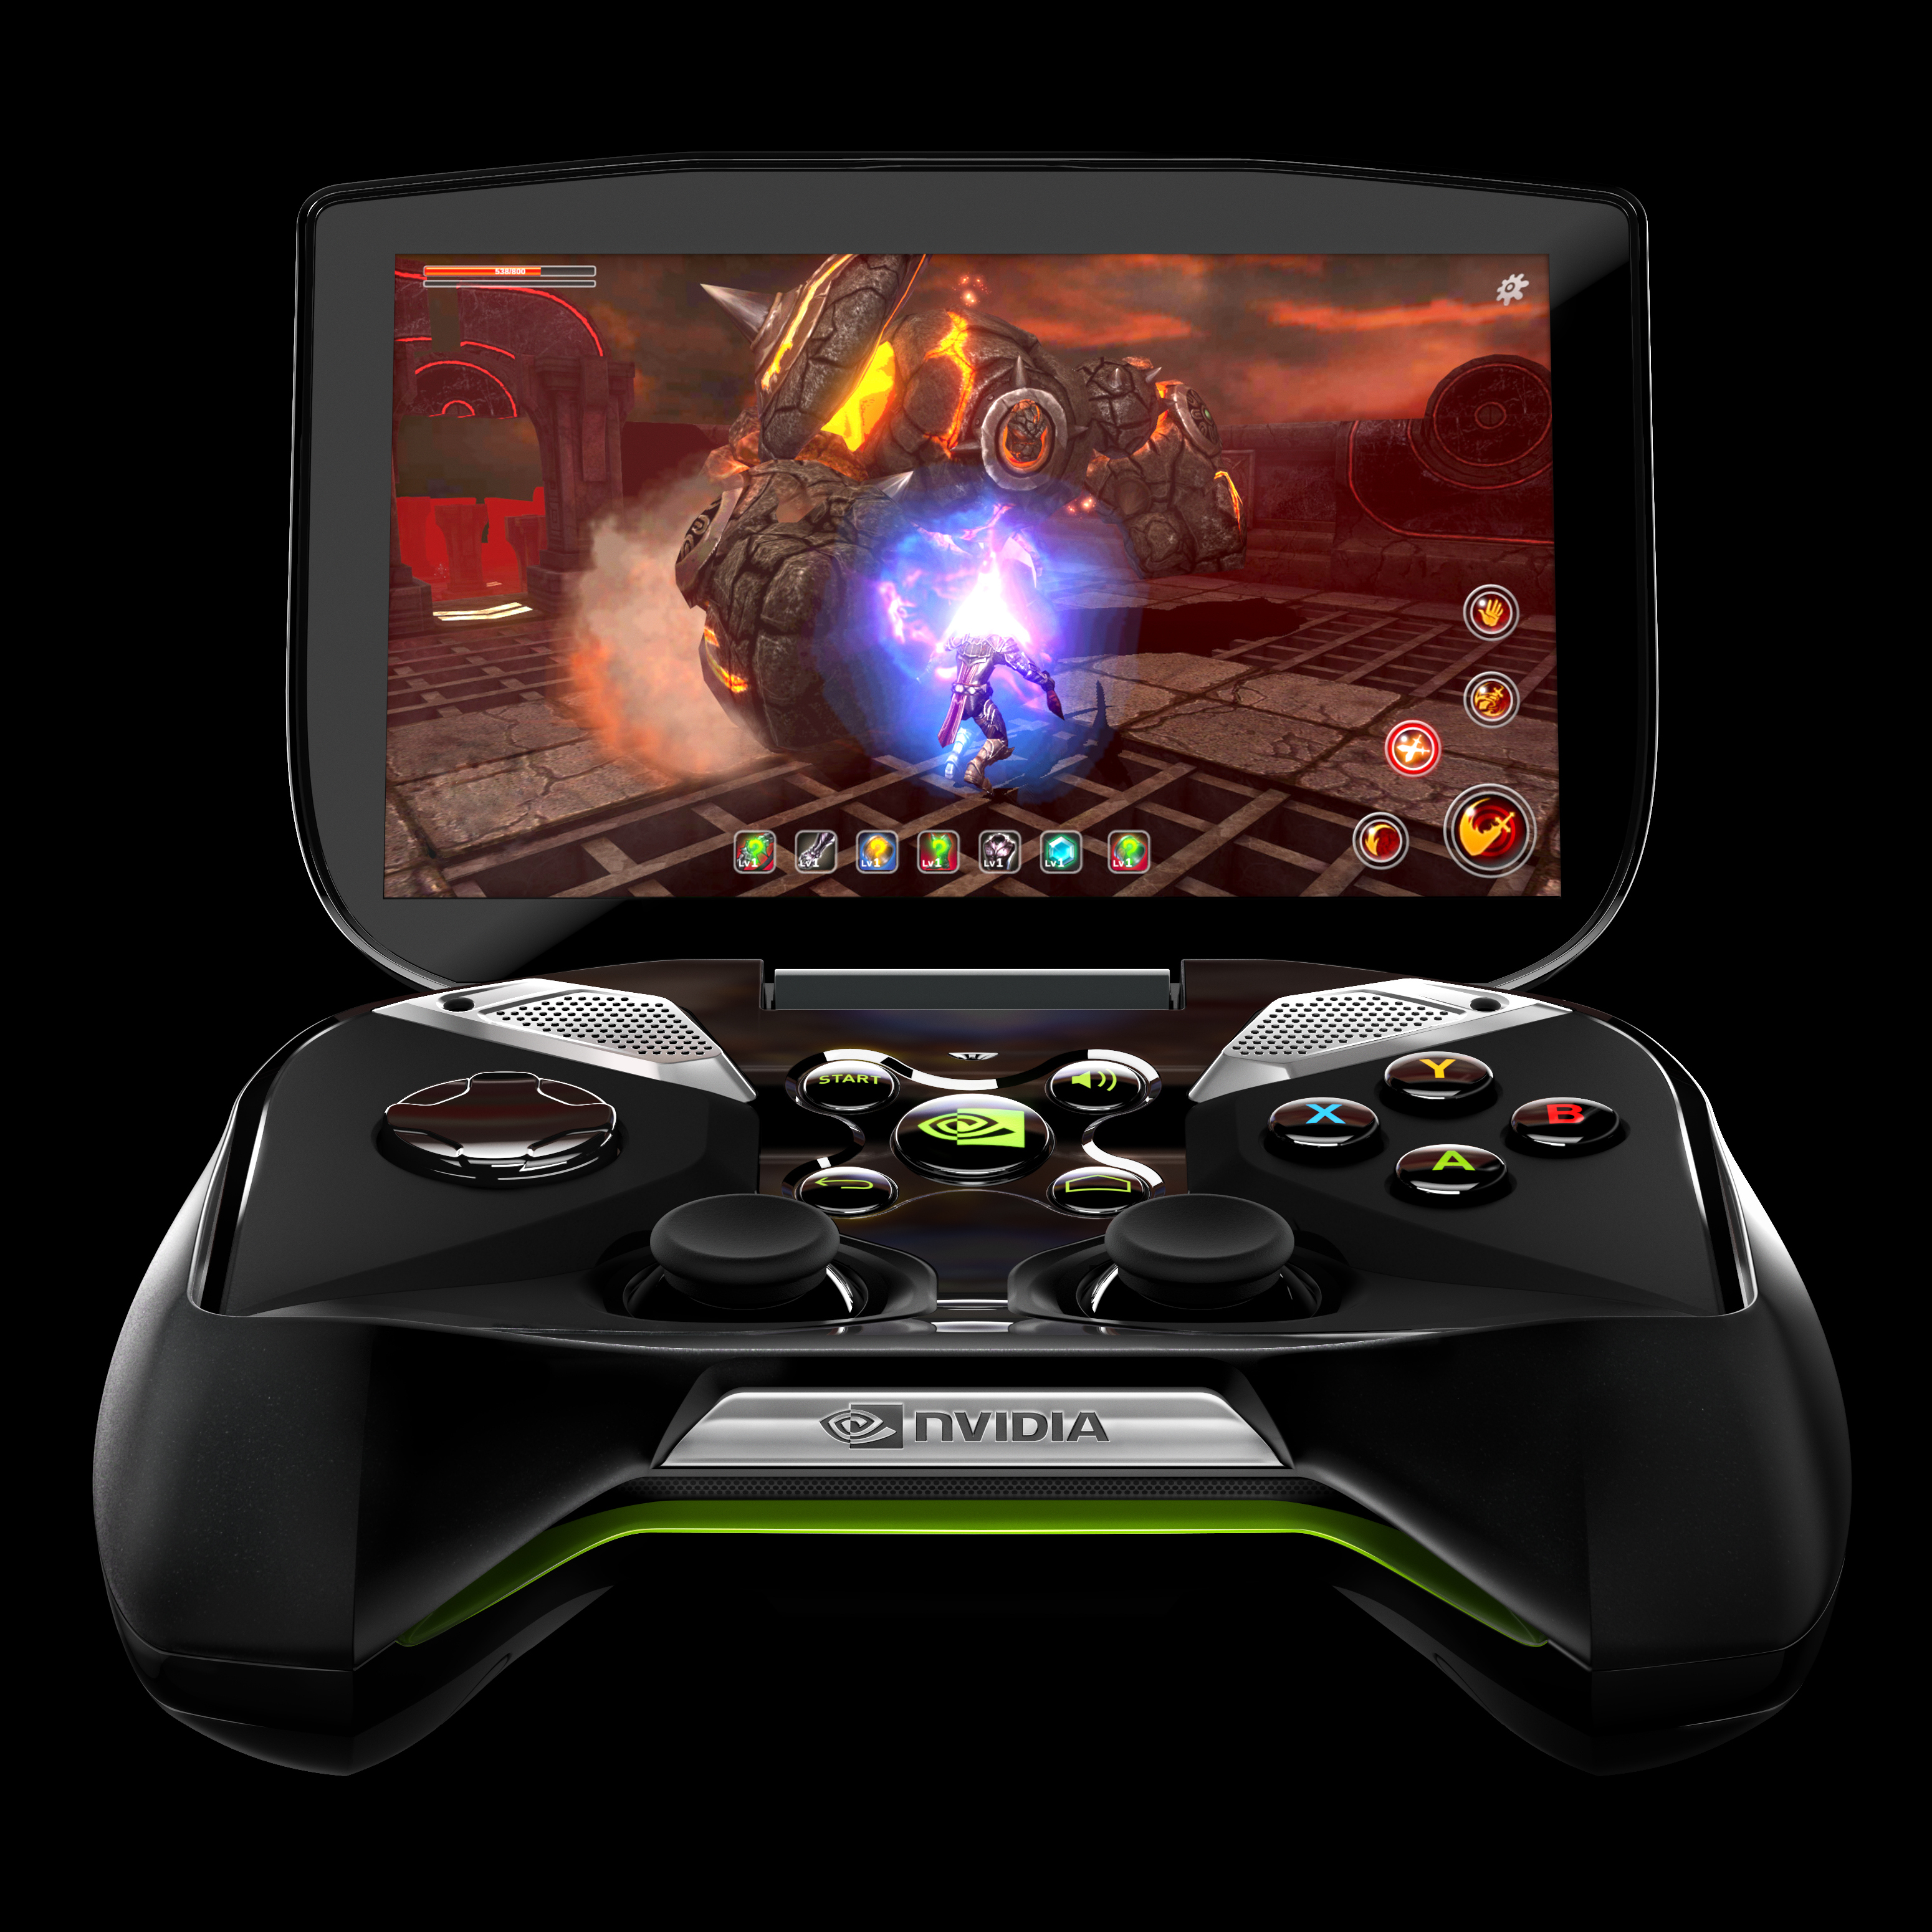 Nvidia's Shield allows gamers to stream either Android games or PC games onto their big-screen TVs.